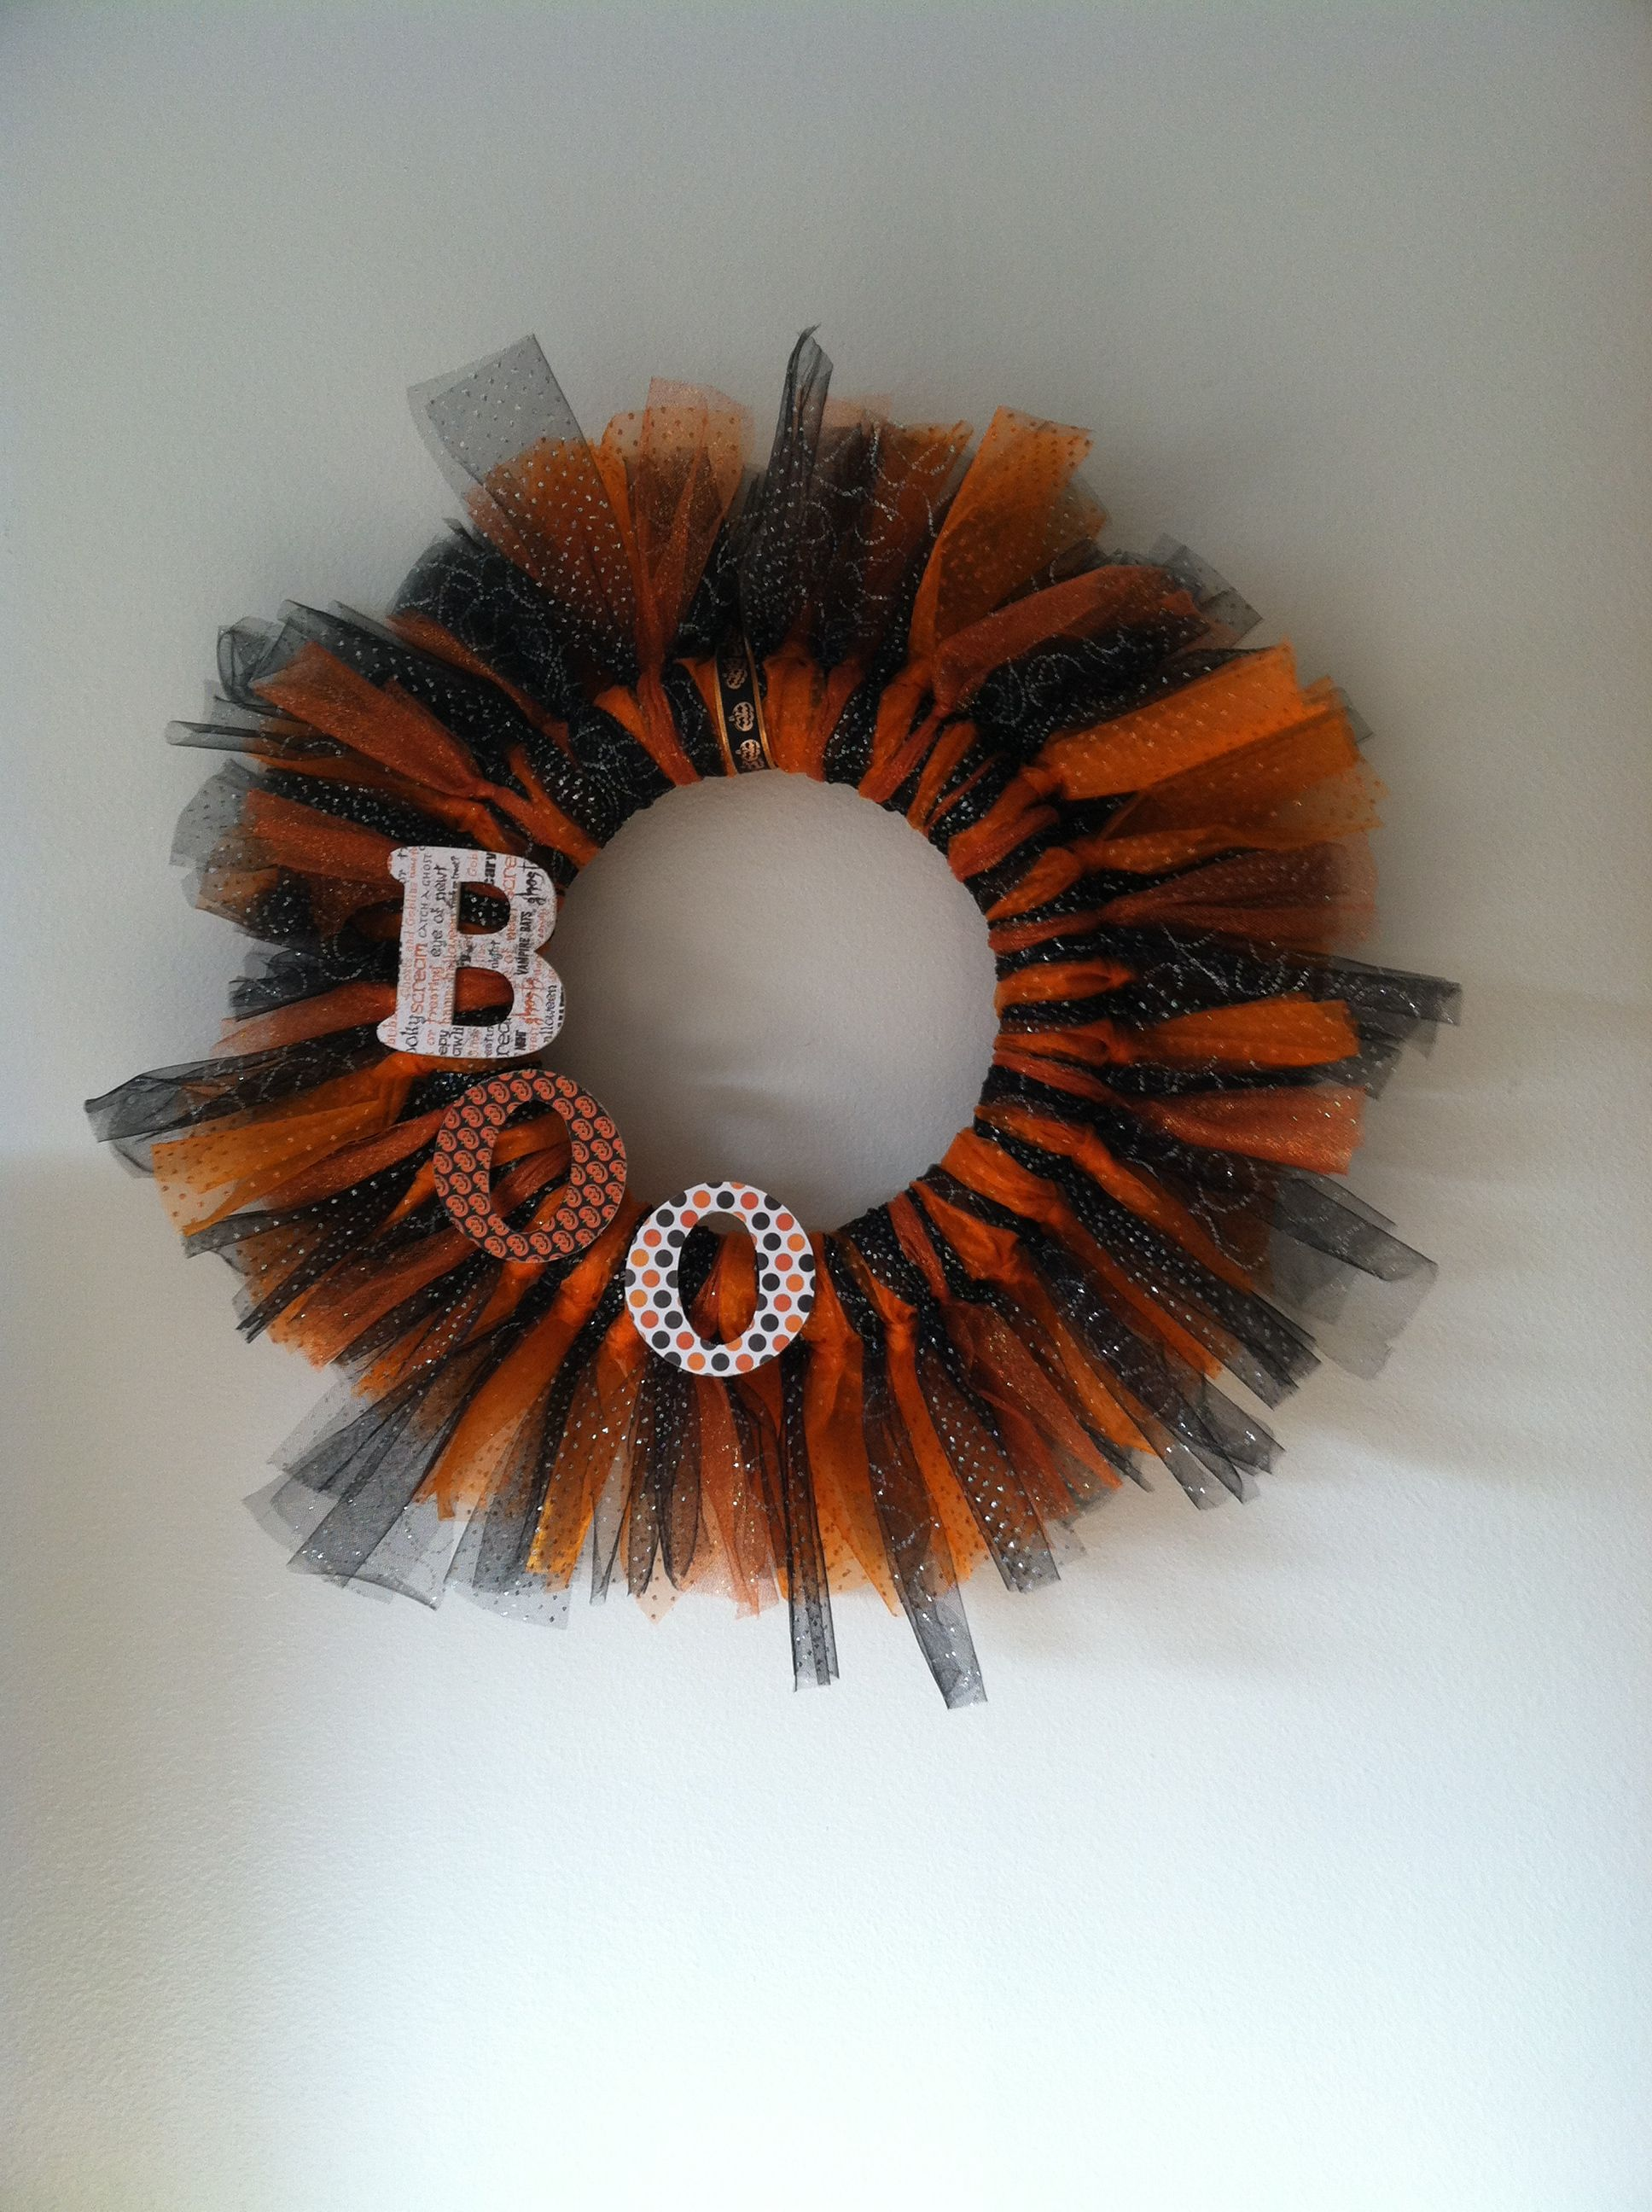 Halloween wreath made from tulle and a foam ring at hobby lobby - Hobby Lobby Halloween Decorations